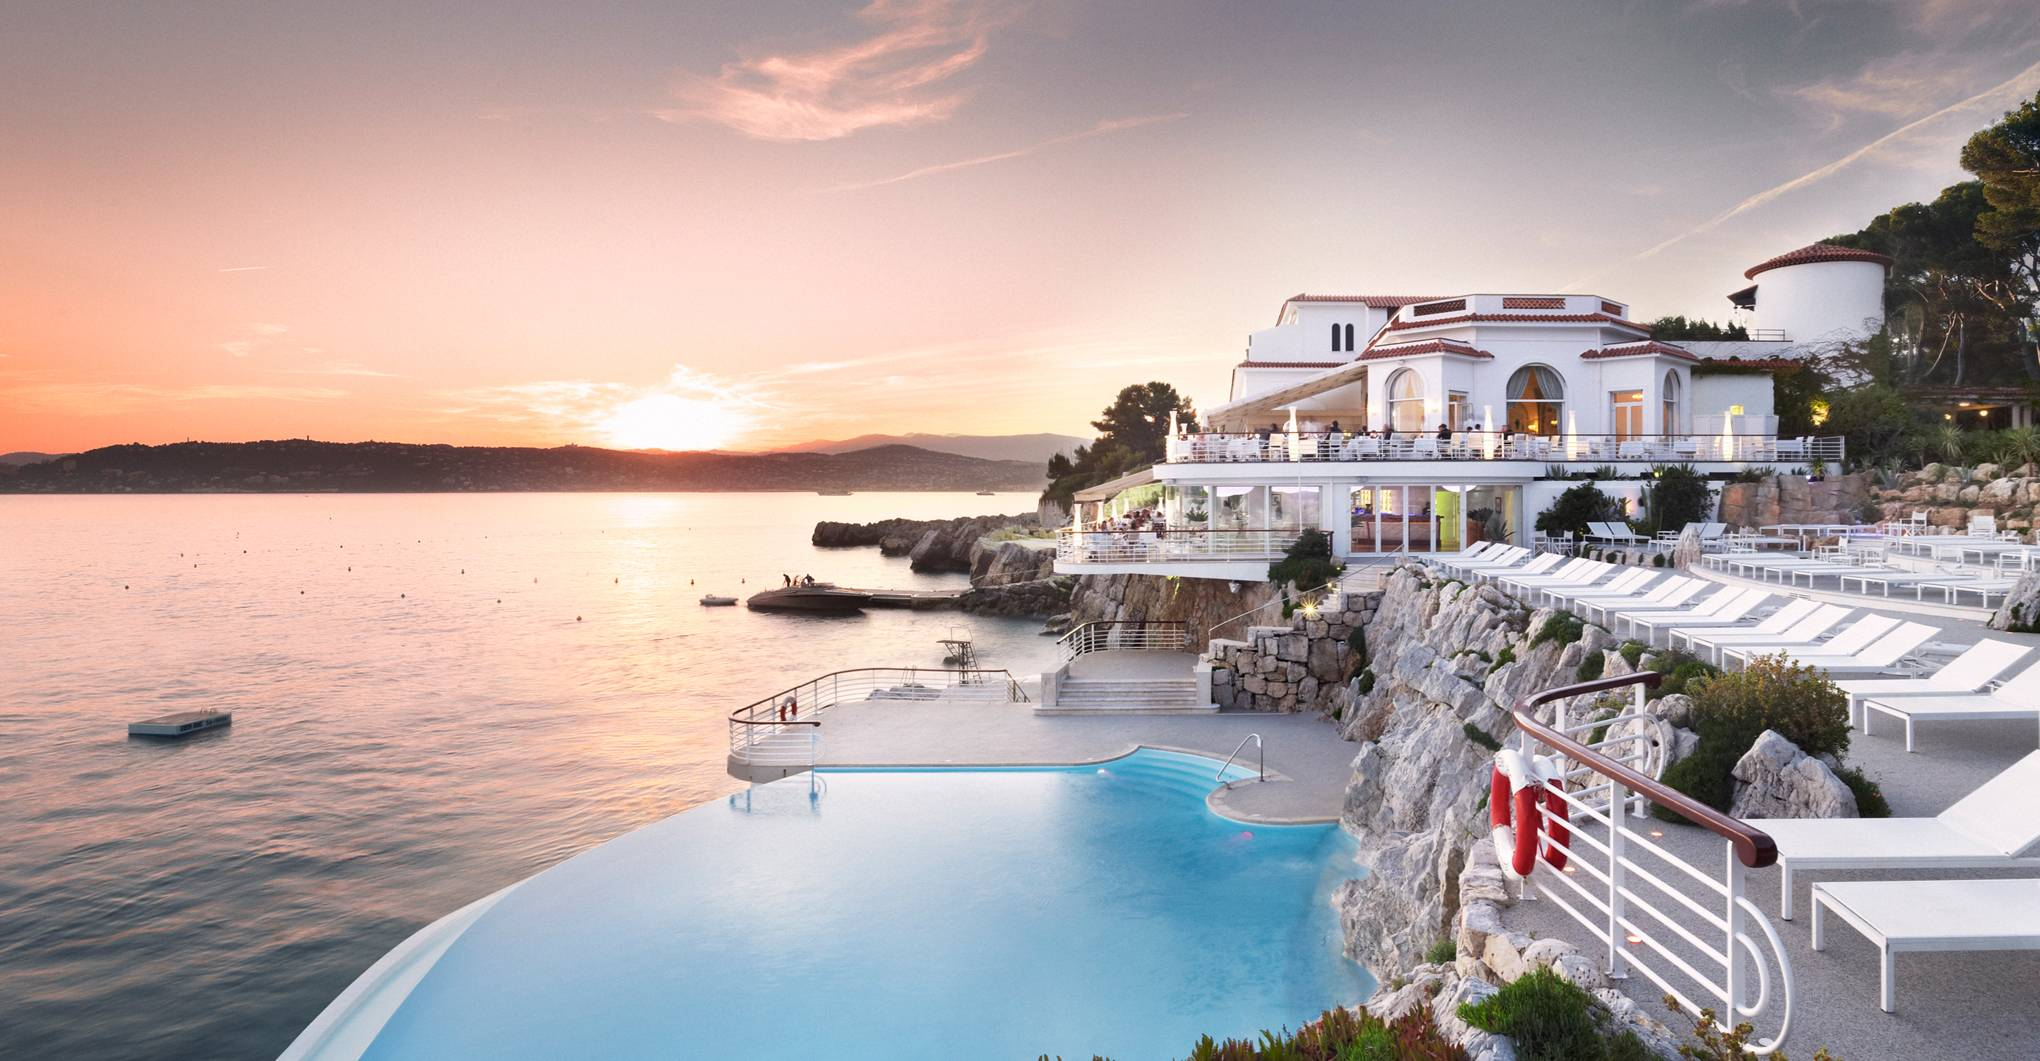 The best hotels in Europe 2018